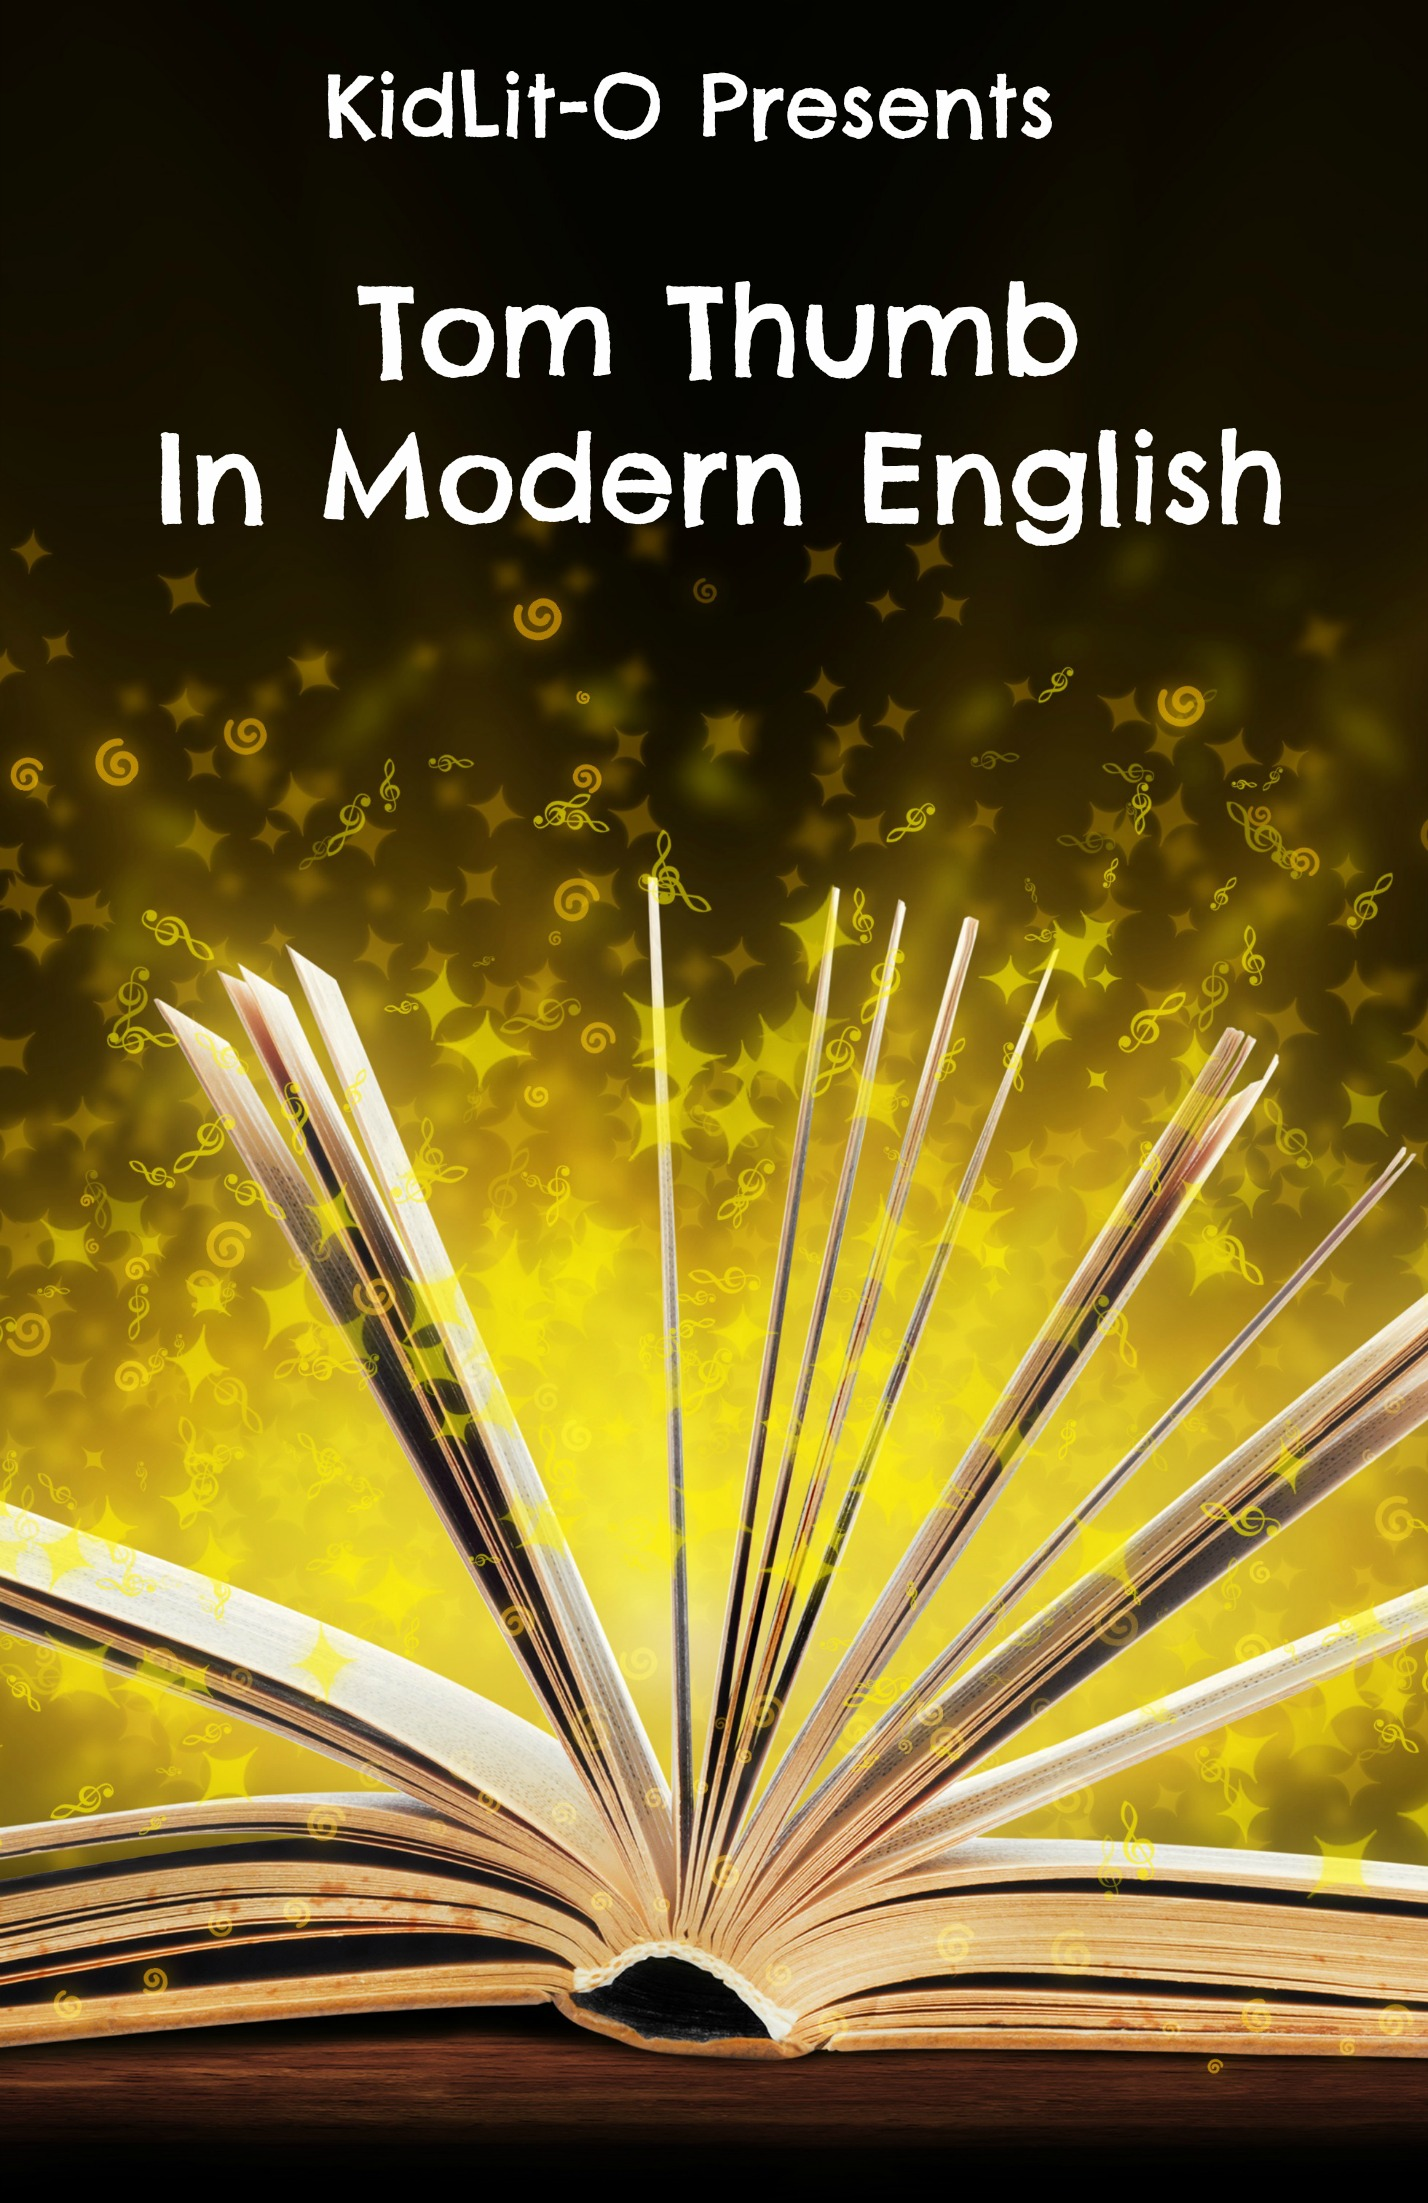 Tom Thumb In Modern English (Translated)